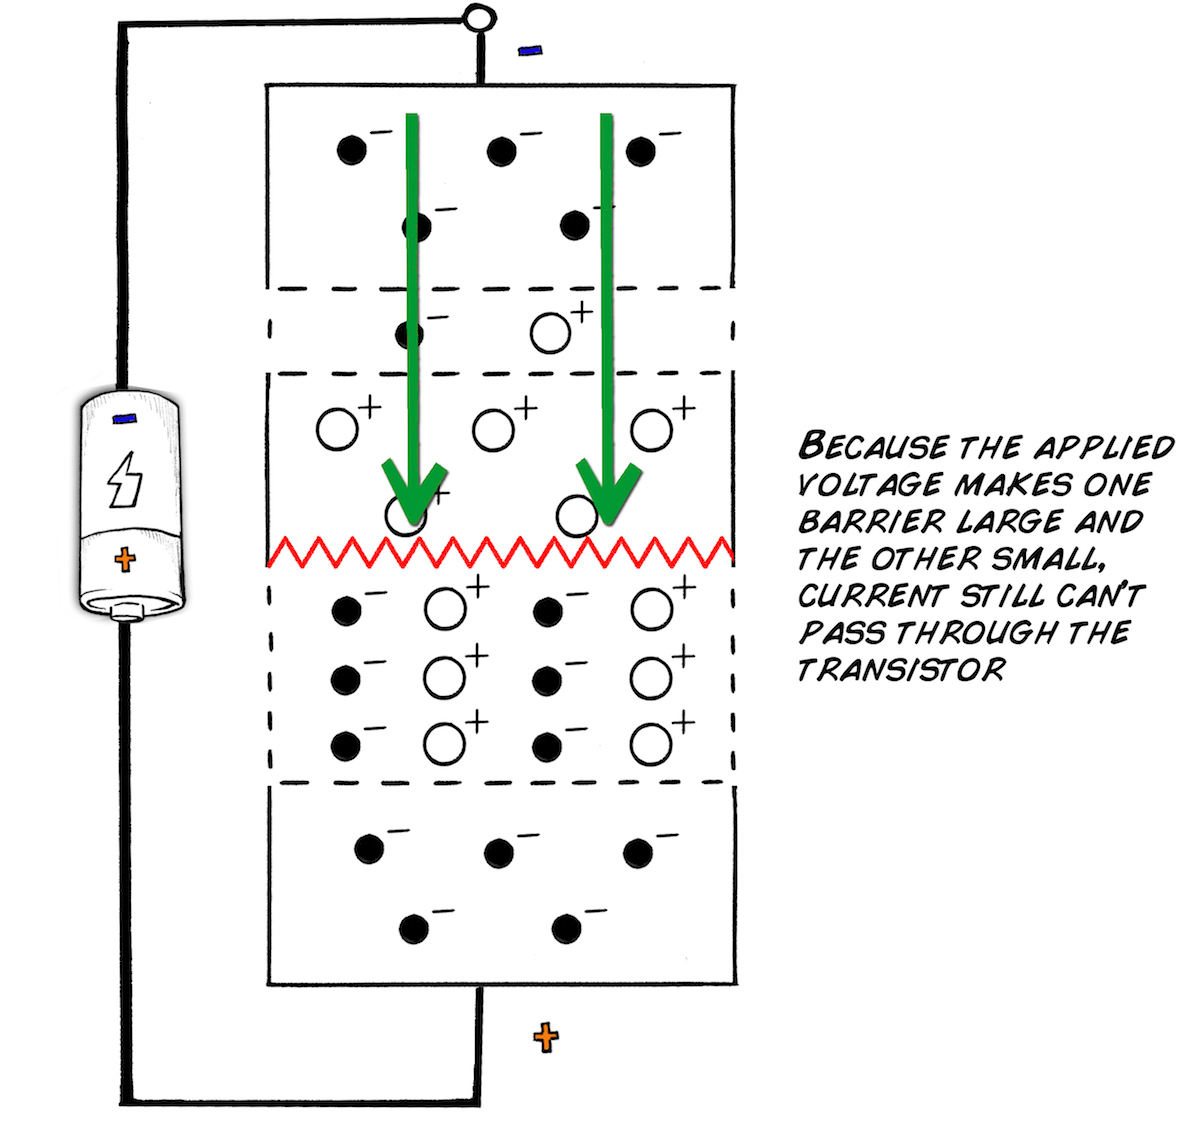 Background Transistor Theory P N Junction Circuit Diagram We Now Have A Device With One And That Acts Like Two Diodes Placed Back To What Would Happen If You Applied Large